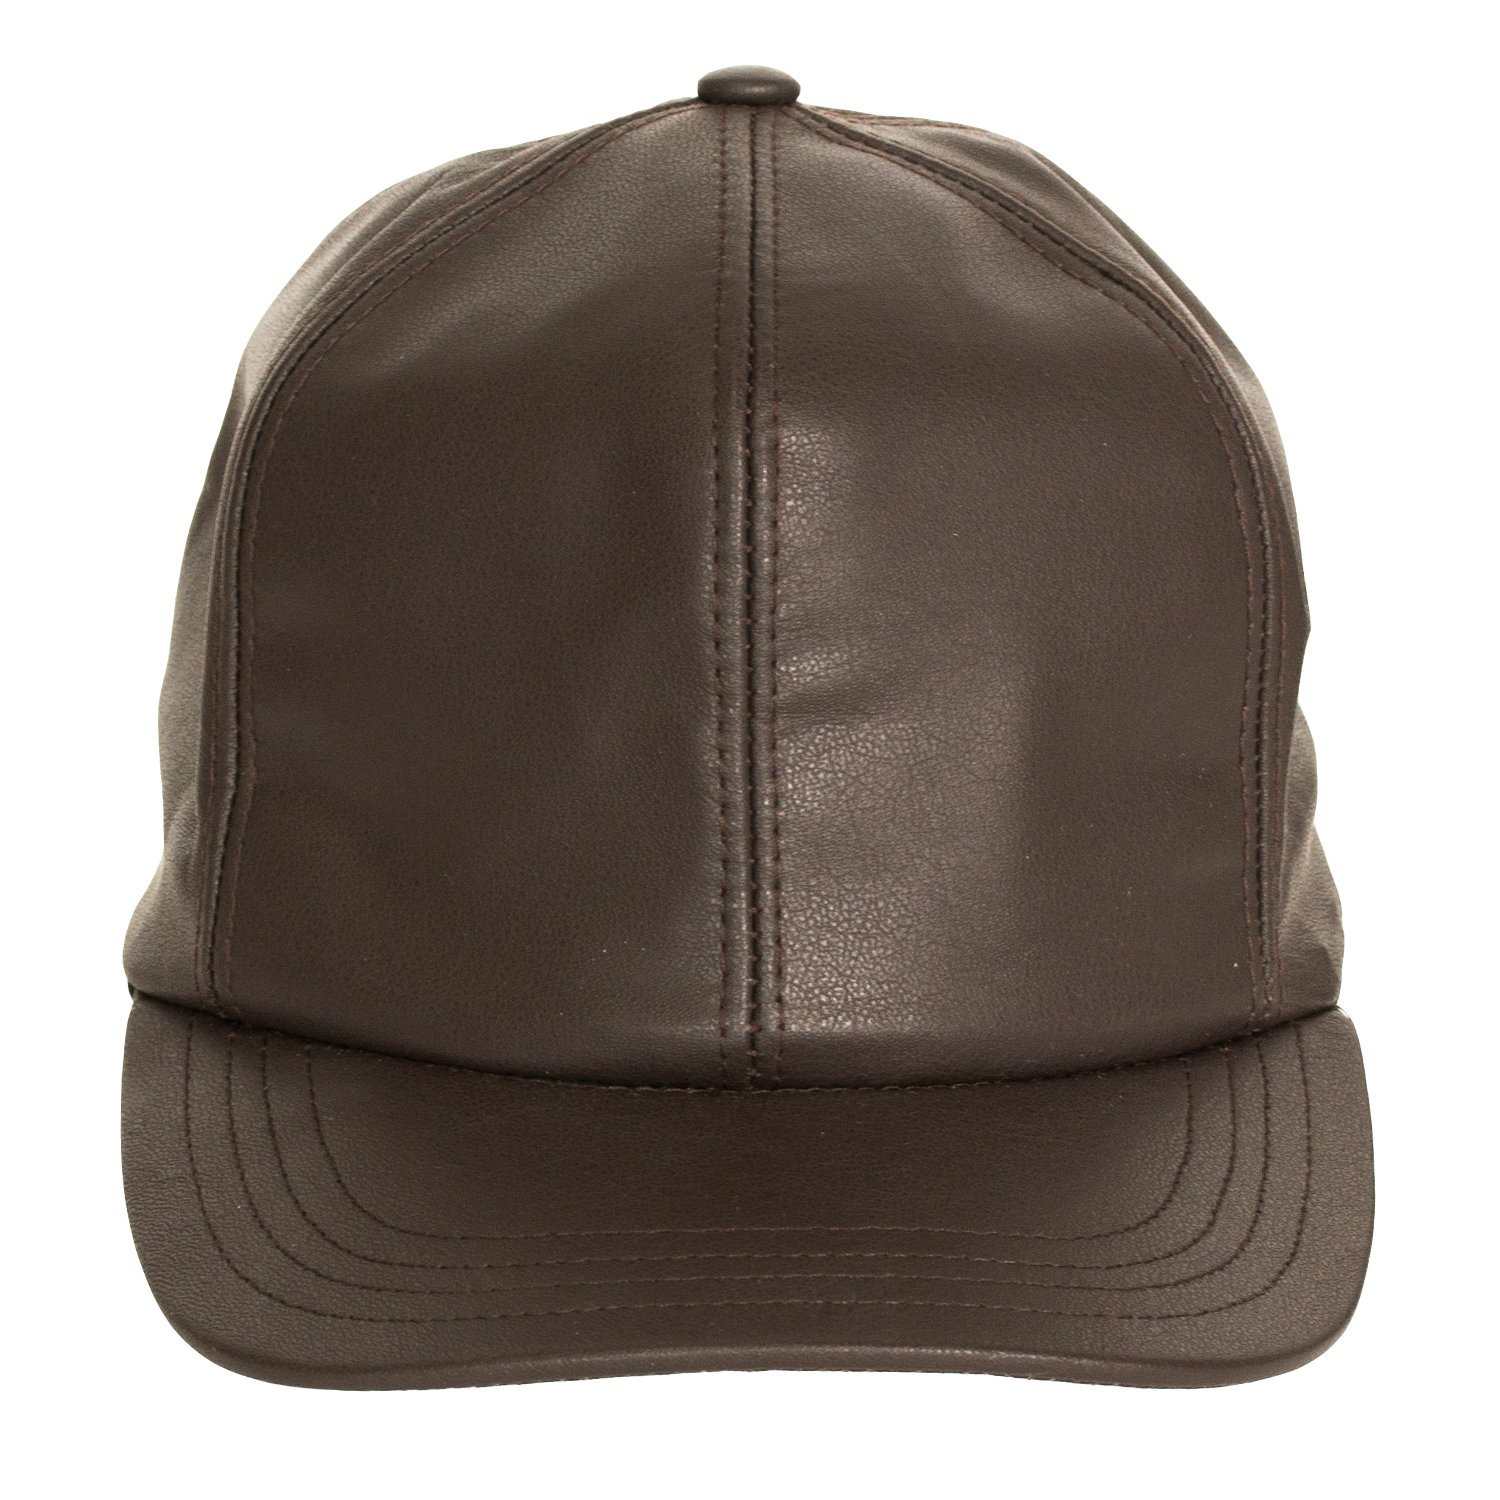 12a304f6bf22e Levine Hat Co Men's Genuine Cowhide Leather Fitted Closed Back Baseball Cap  (2 Colors) at Amazon Men's Clothing store: